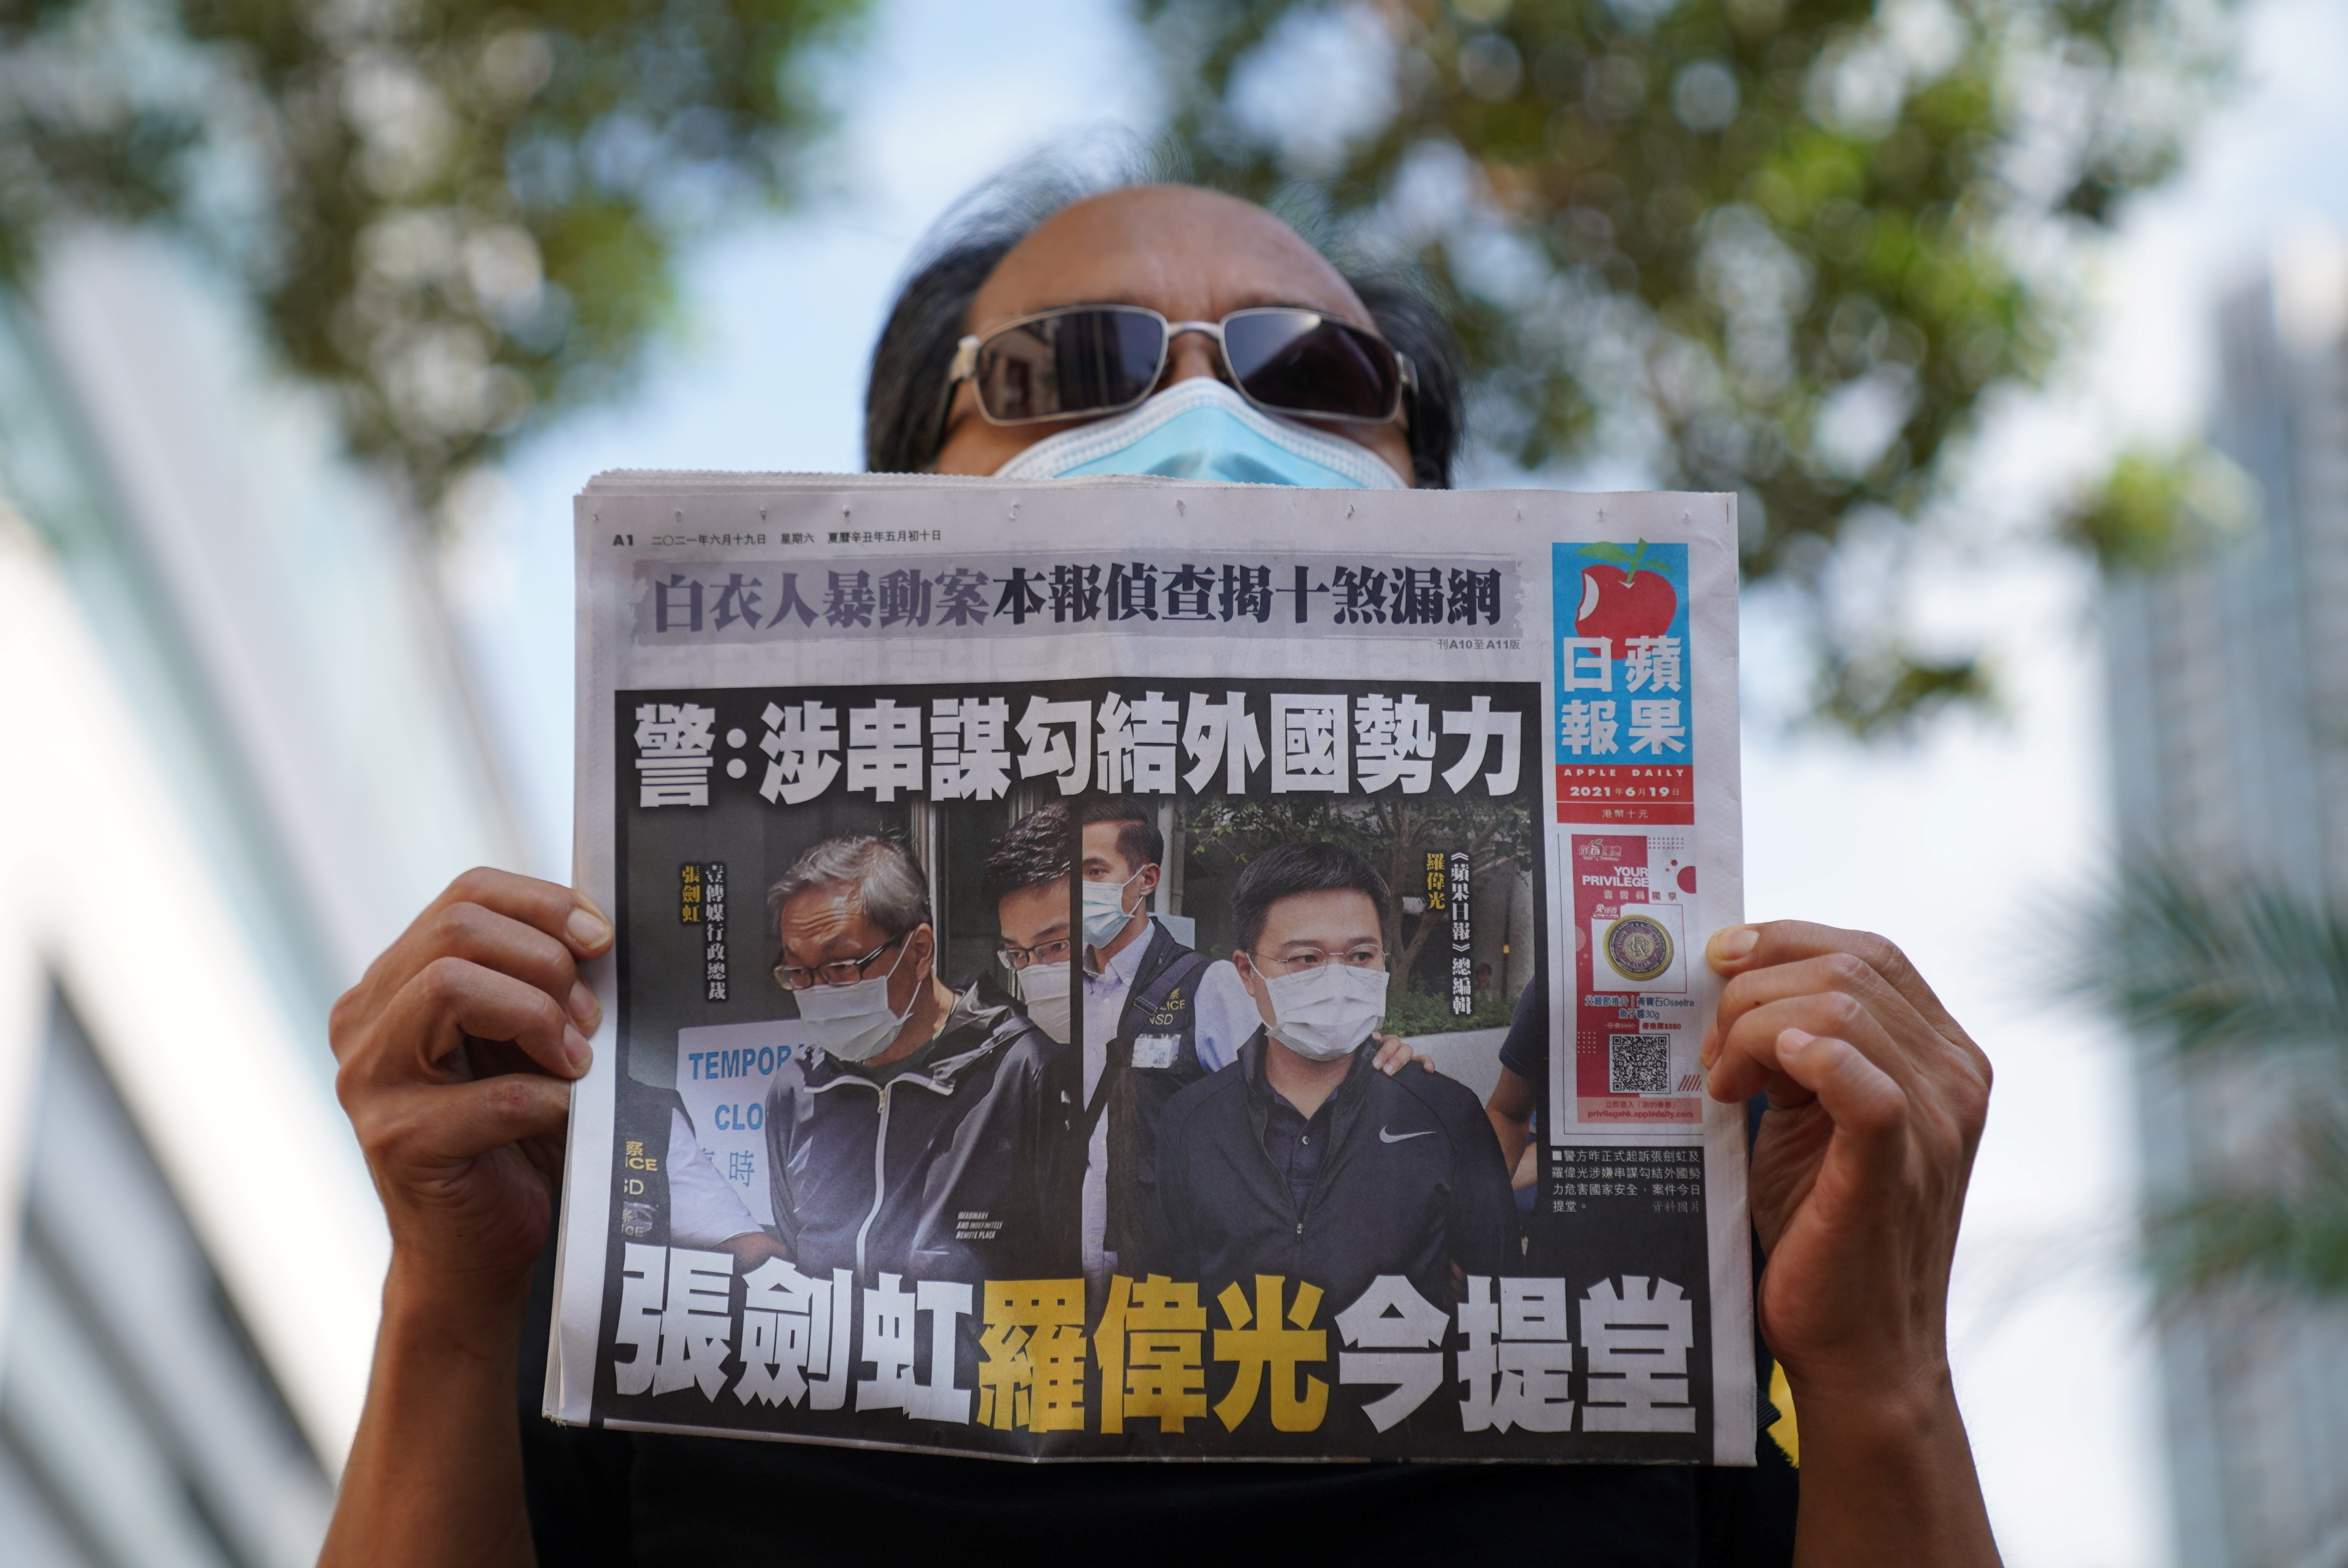 A supporter holds a copy of the anti-Beijing Apple Daily newspaper during a court hearing after police charged two executives of the newspaper under a national security law, outside West Magistrates' Courts in Hong Kong, China, June 19, 2021. (Reuters Photo)